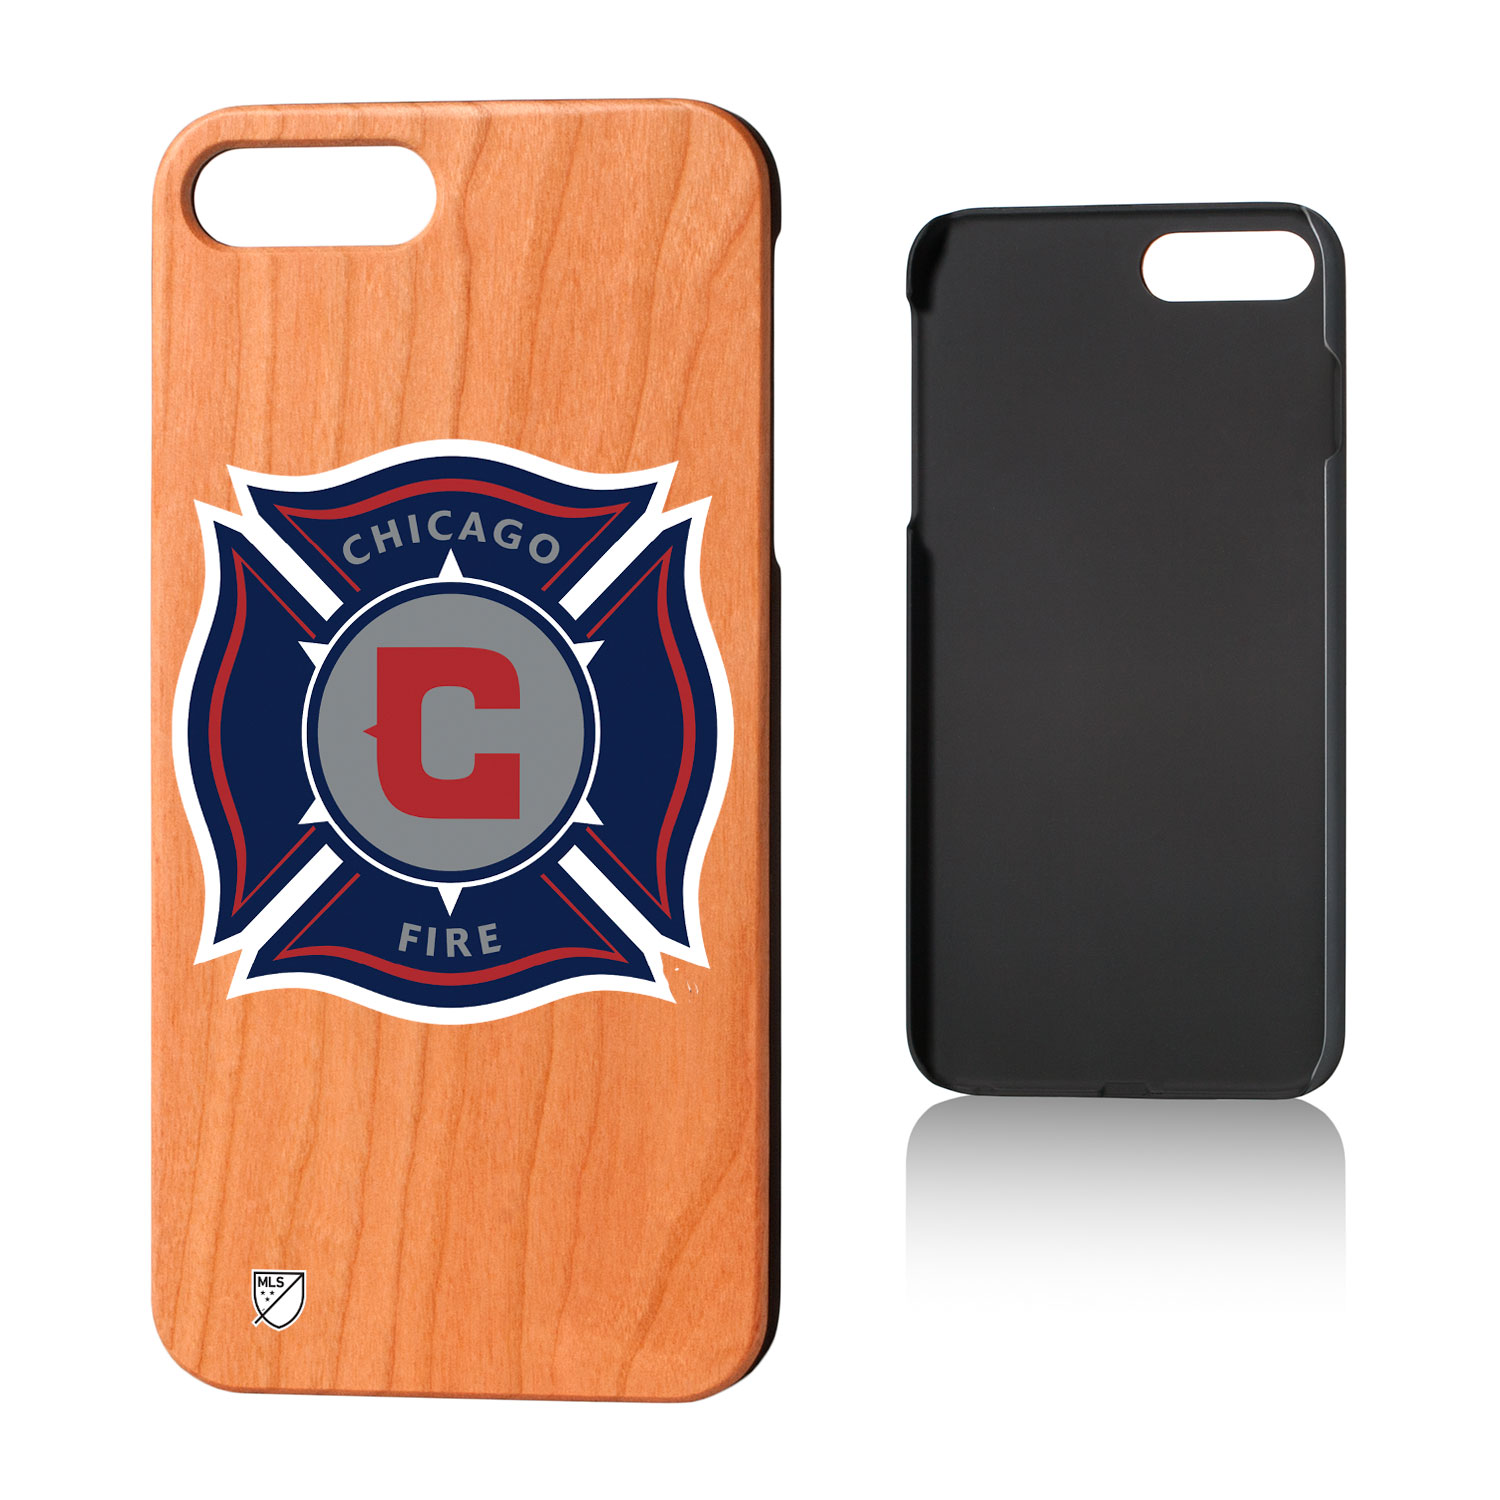 iphone 4 images chicago cf97 insignia cherry for iphone 8 plus 10860